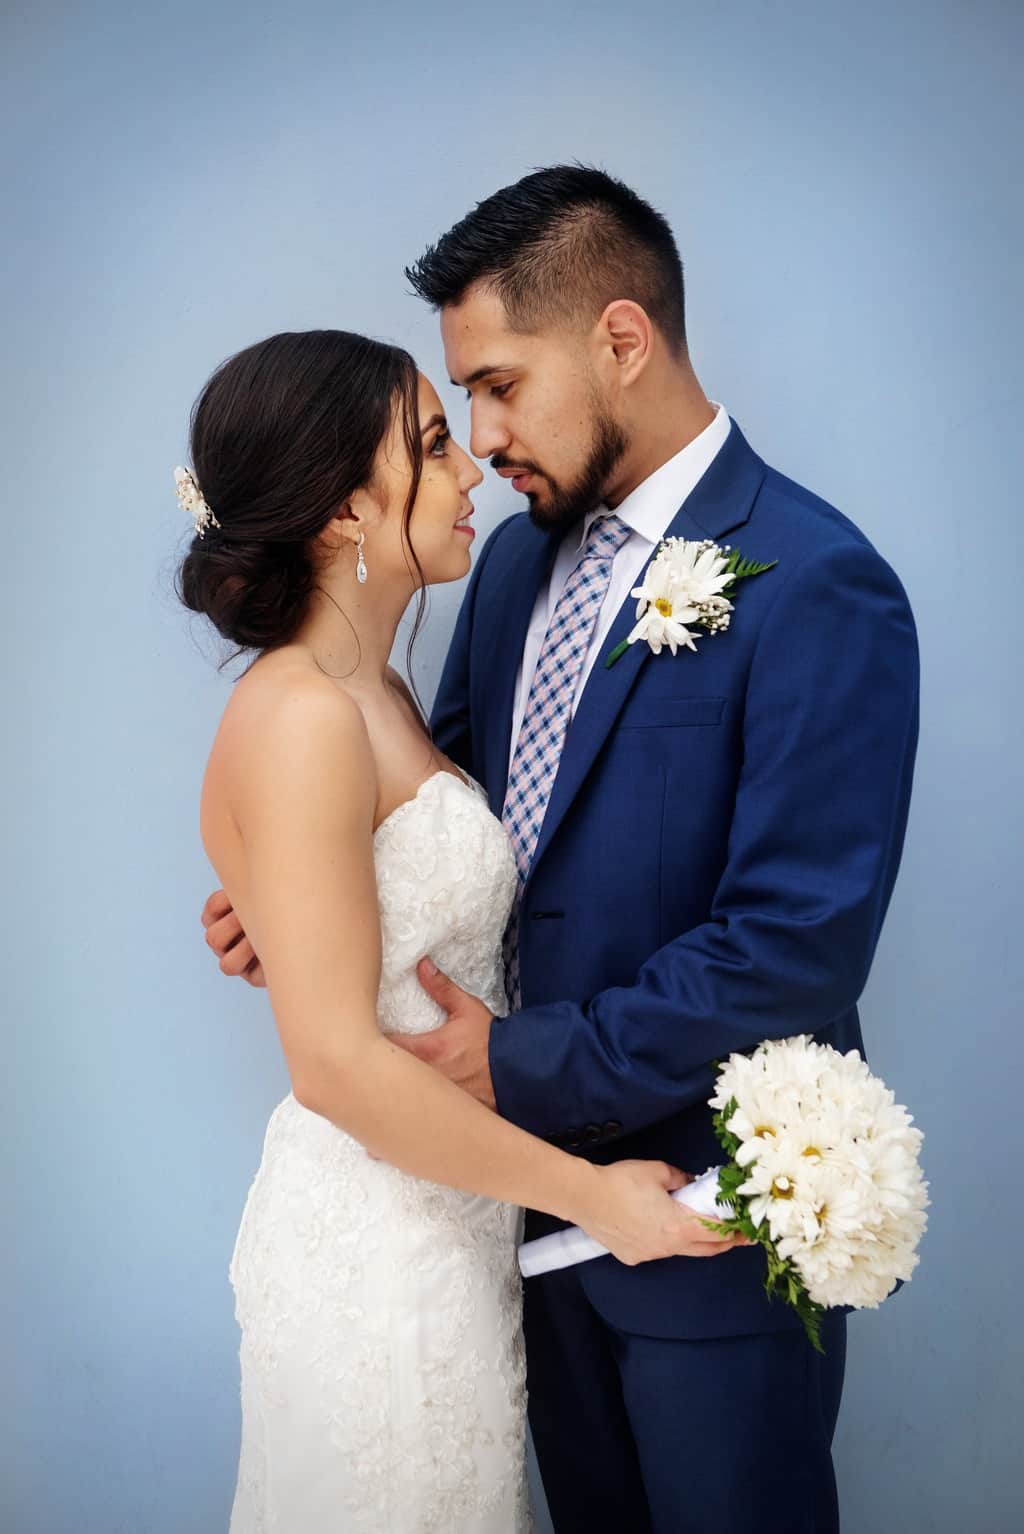 Bride And Groom Standing Next To Each Other